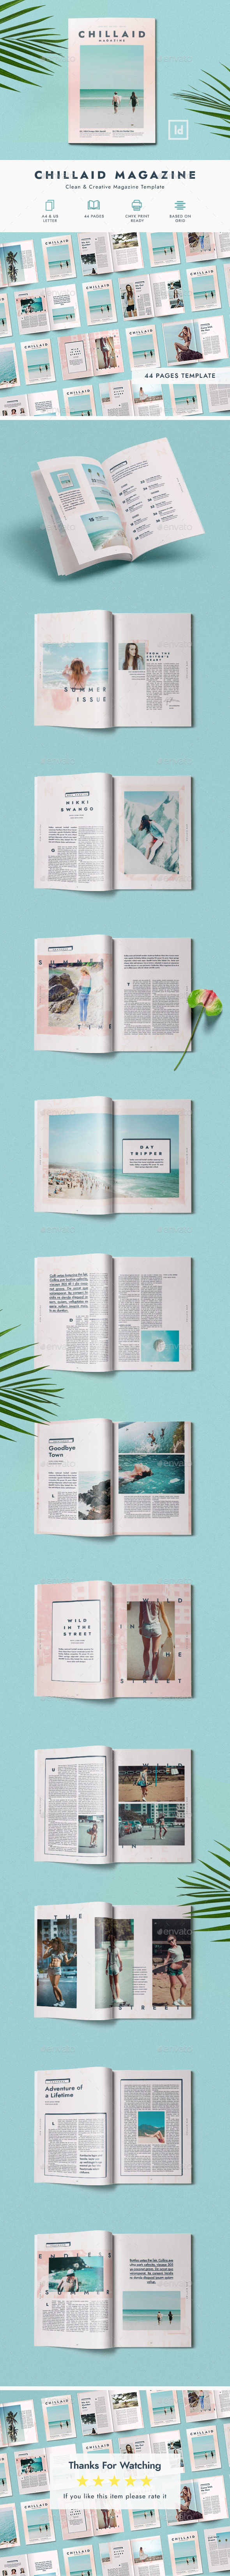 44 Pages - Chillaid Magazine Template - Magazines Print Templates